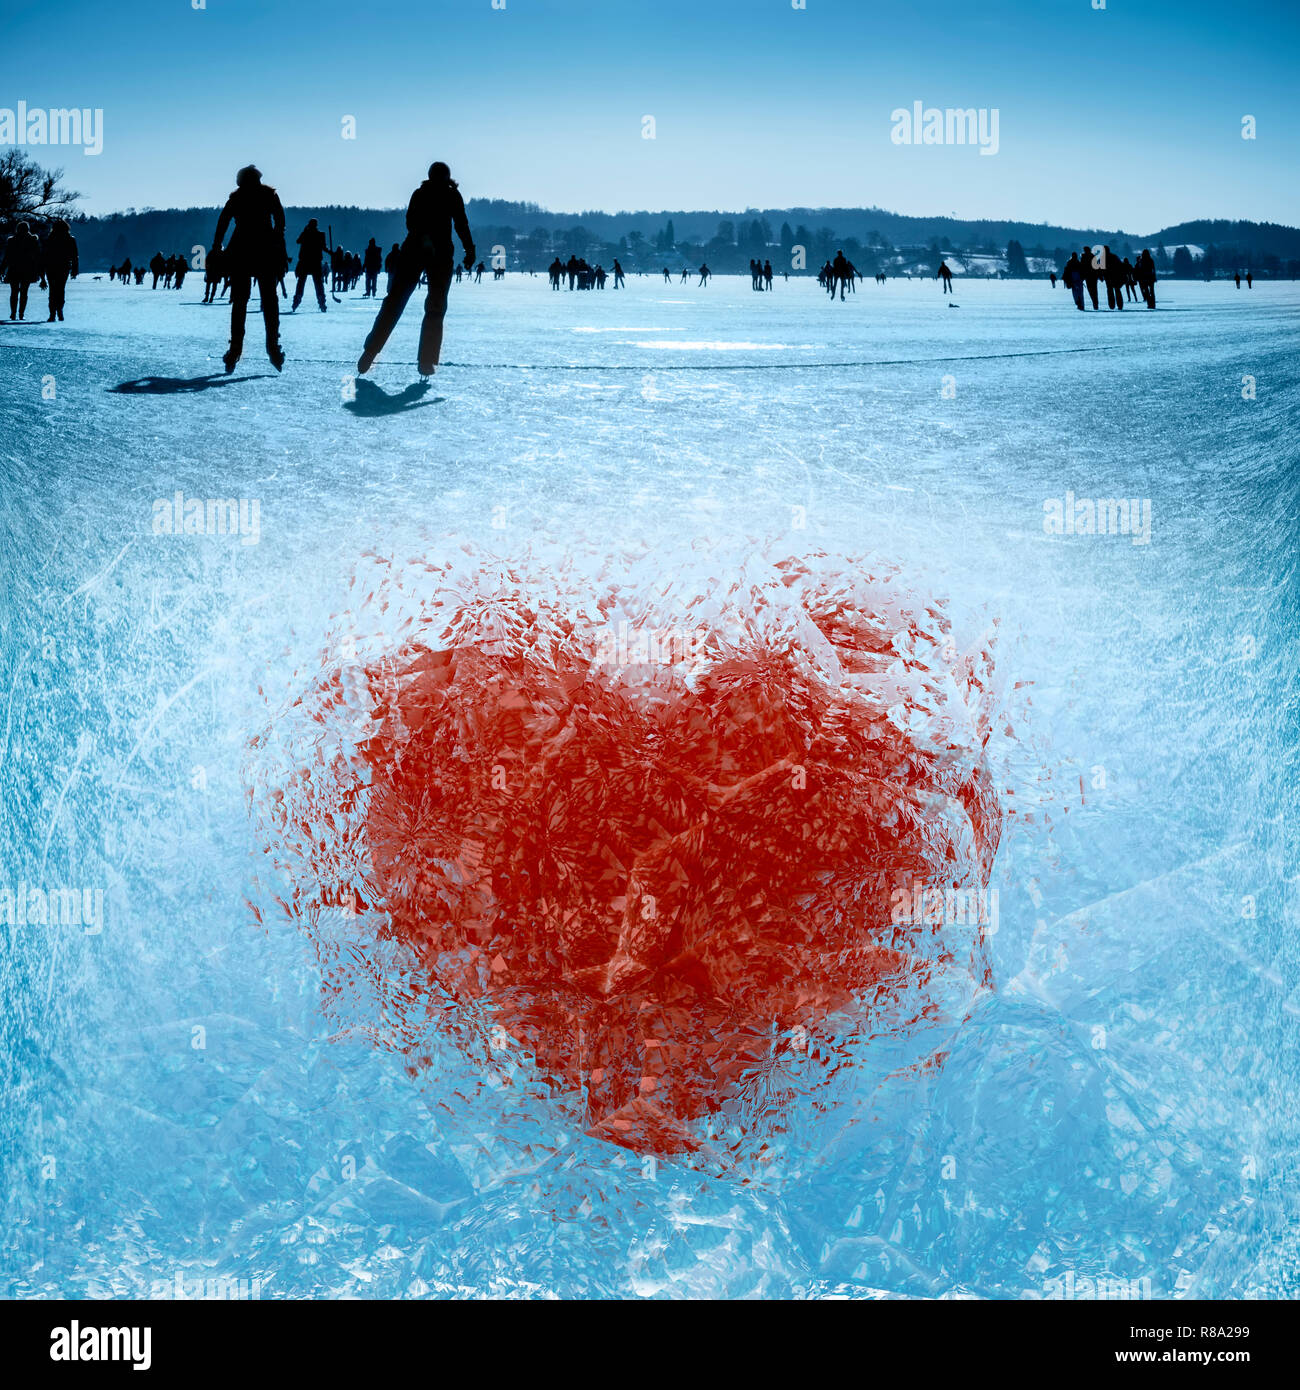 Ice-frozen heart on a lake with skaters - Stock Image